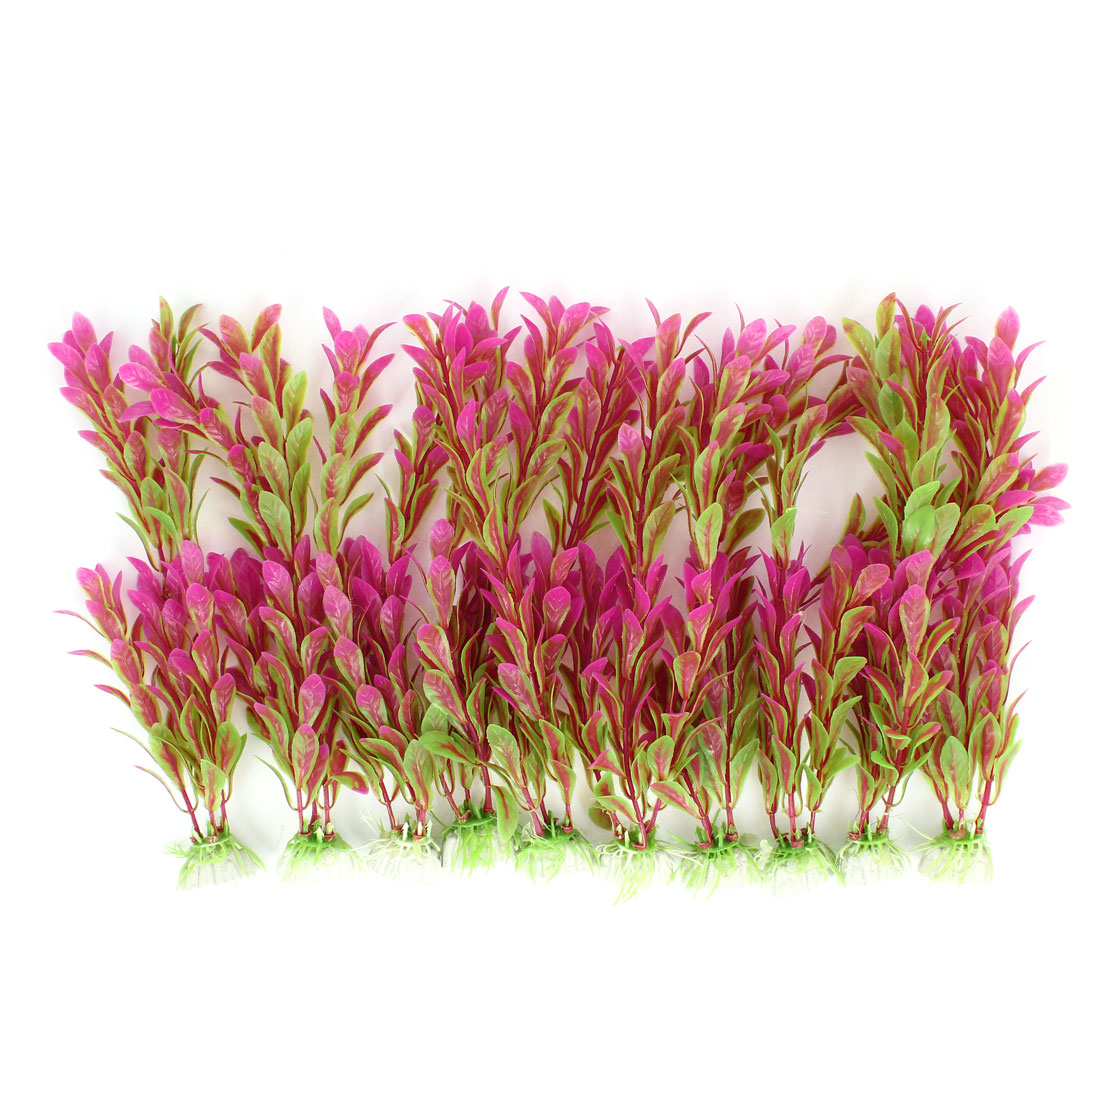 "Aquarium Landscaping Artificial Underwater Plant Grass Decor Fuchsia Green 9.5"" Height 10pcs"